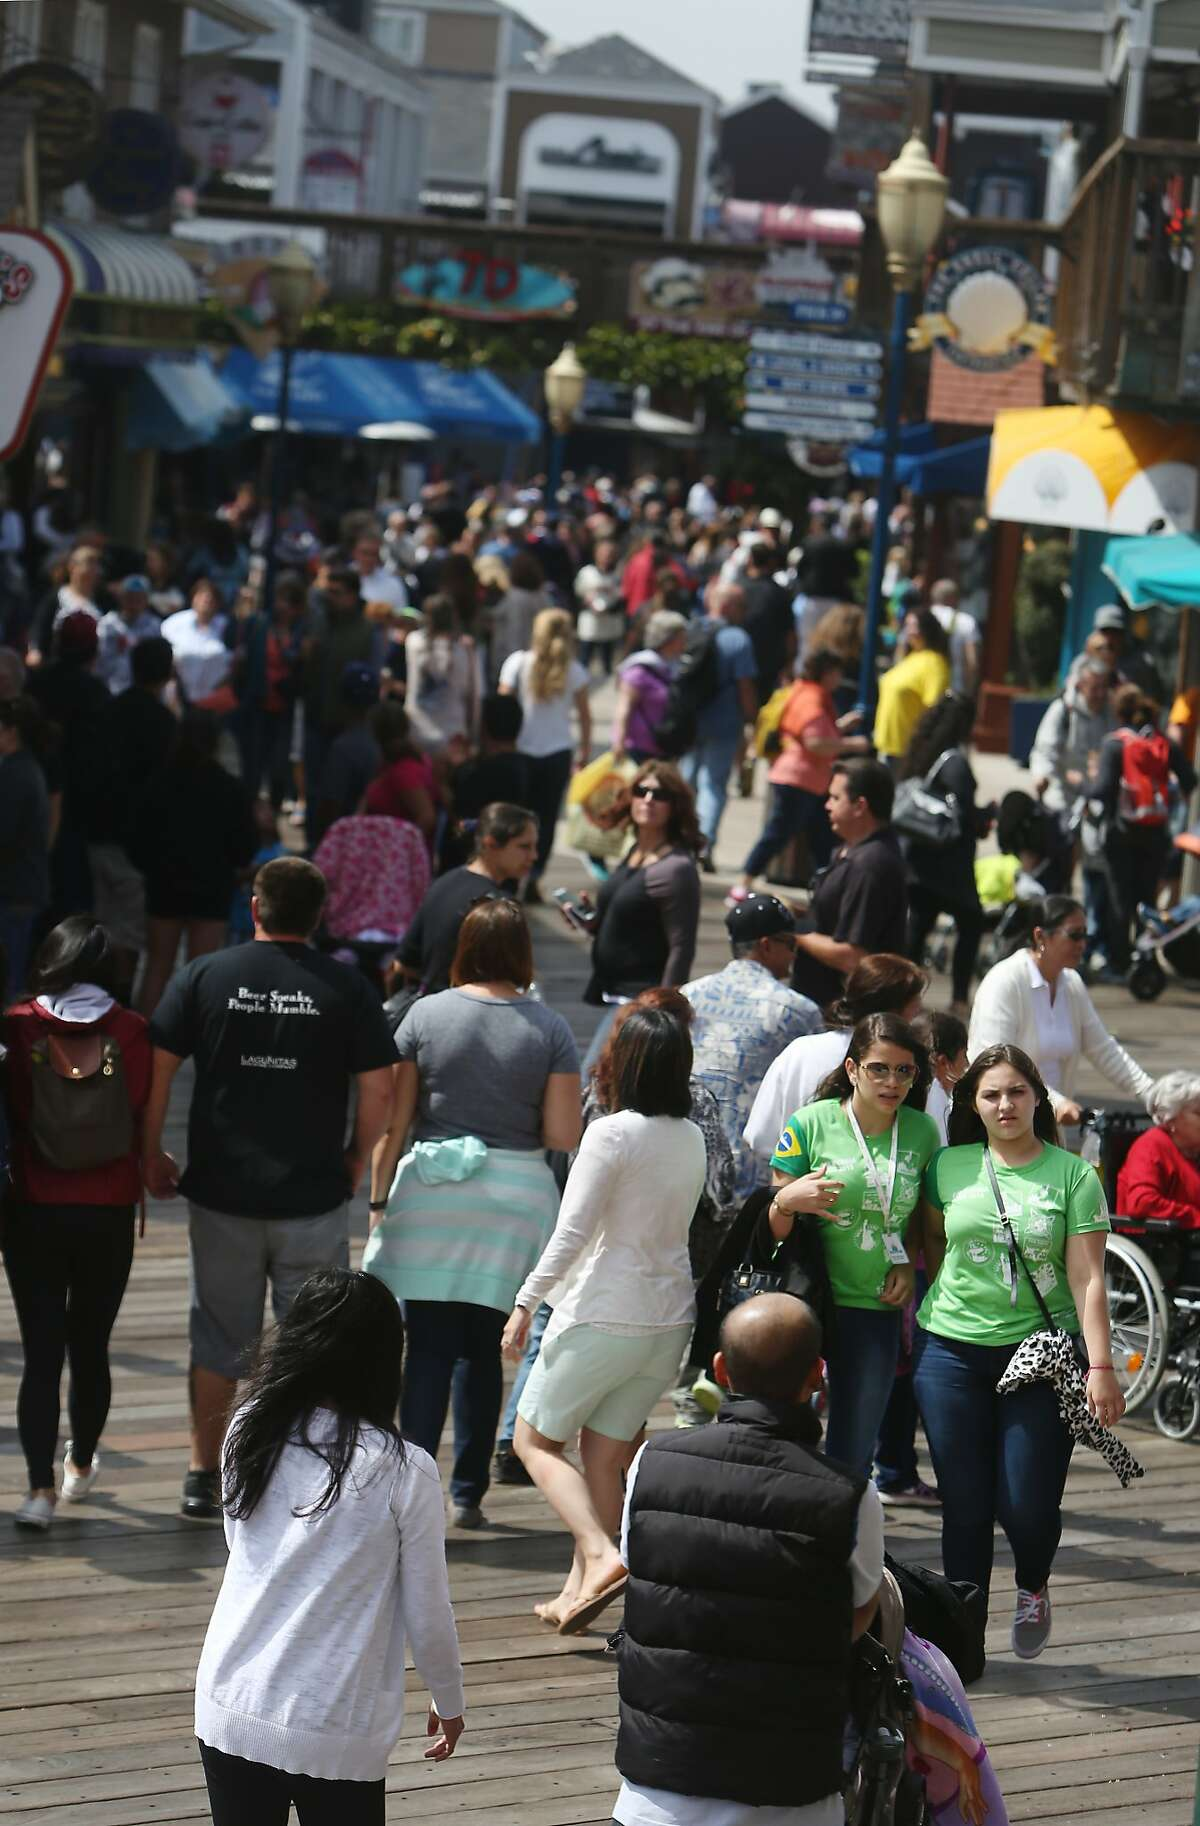 Maria Clara Sampaio (green shirts l to r) and Amanda Farache both of Brazil, navigate their way through the crowd walking on Pier 39 during a visit on Tuesday, July 7, 2015 in San Francisco, Calif.